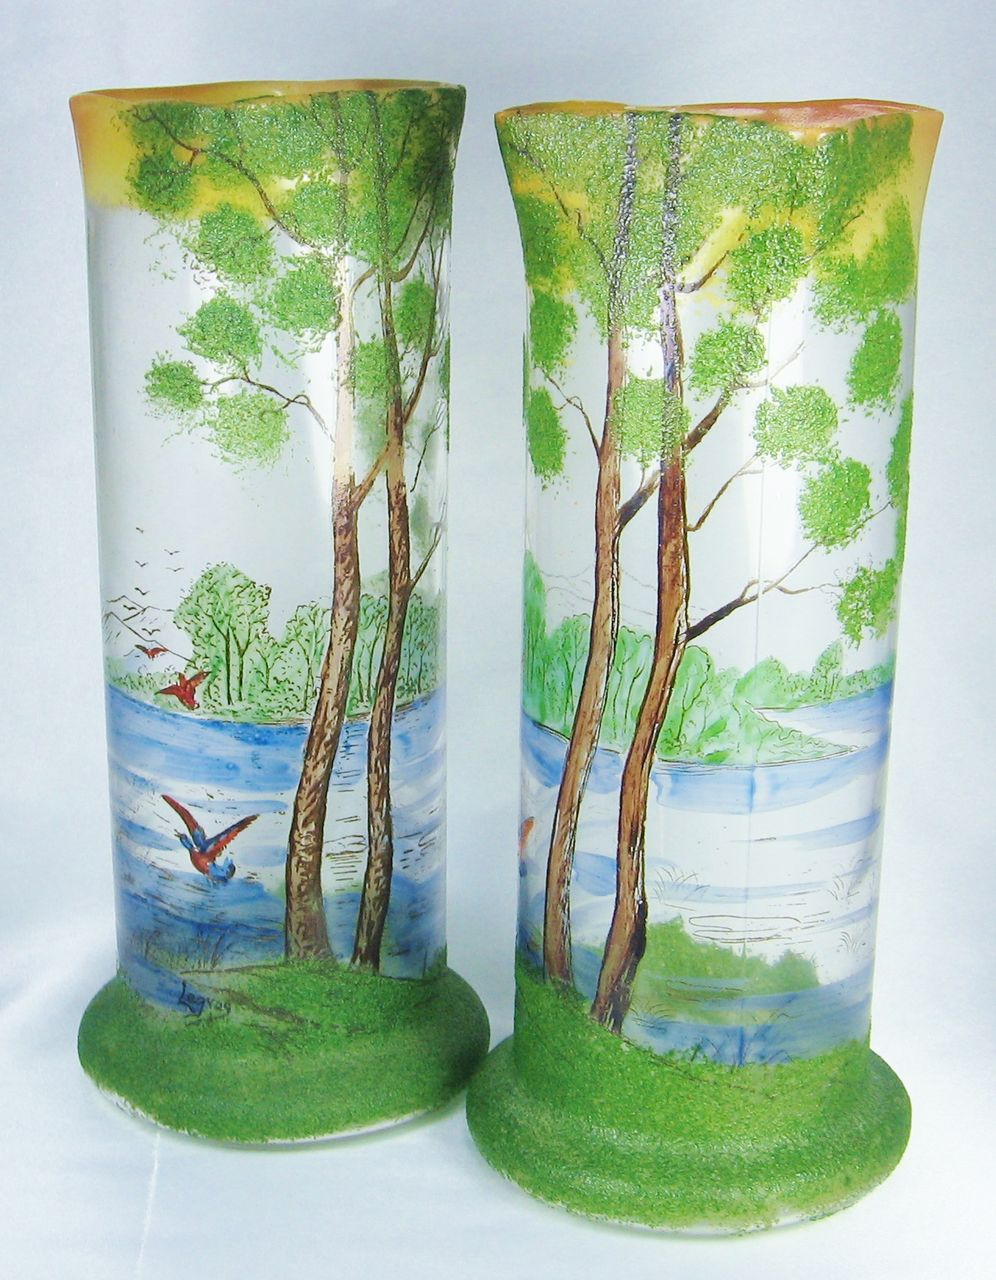 Antique Art Nouveau Legras French Mottled Cameo Glass and Enameled Landscape Lake Vases